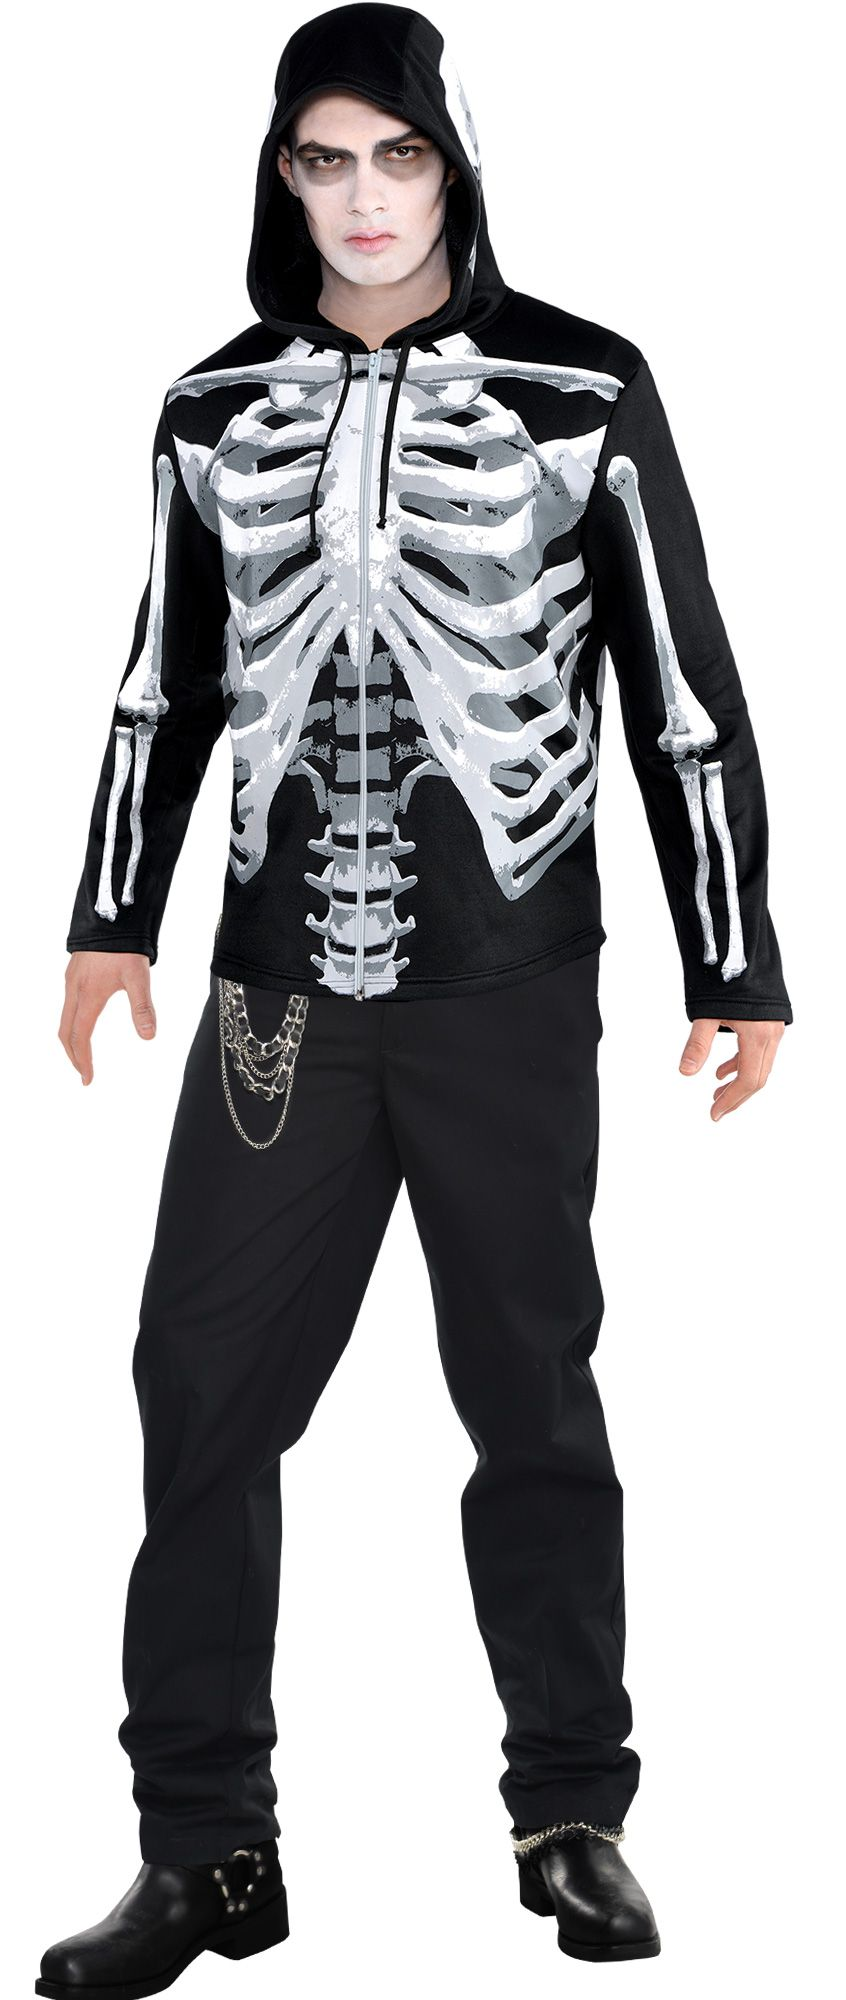 Men's Black & Bone Skeleton Costume Accessories  Party City. Cheap Room Decor Ideas. Bedroom Wall Art Decor. Diy Wedding Decorations On A Budget. Decorative Trees. Beach Themed Room Ideas. Room For Rent In Arlington Va. Ideas To Decorate Your Apartment. Mexican Home Decorations